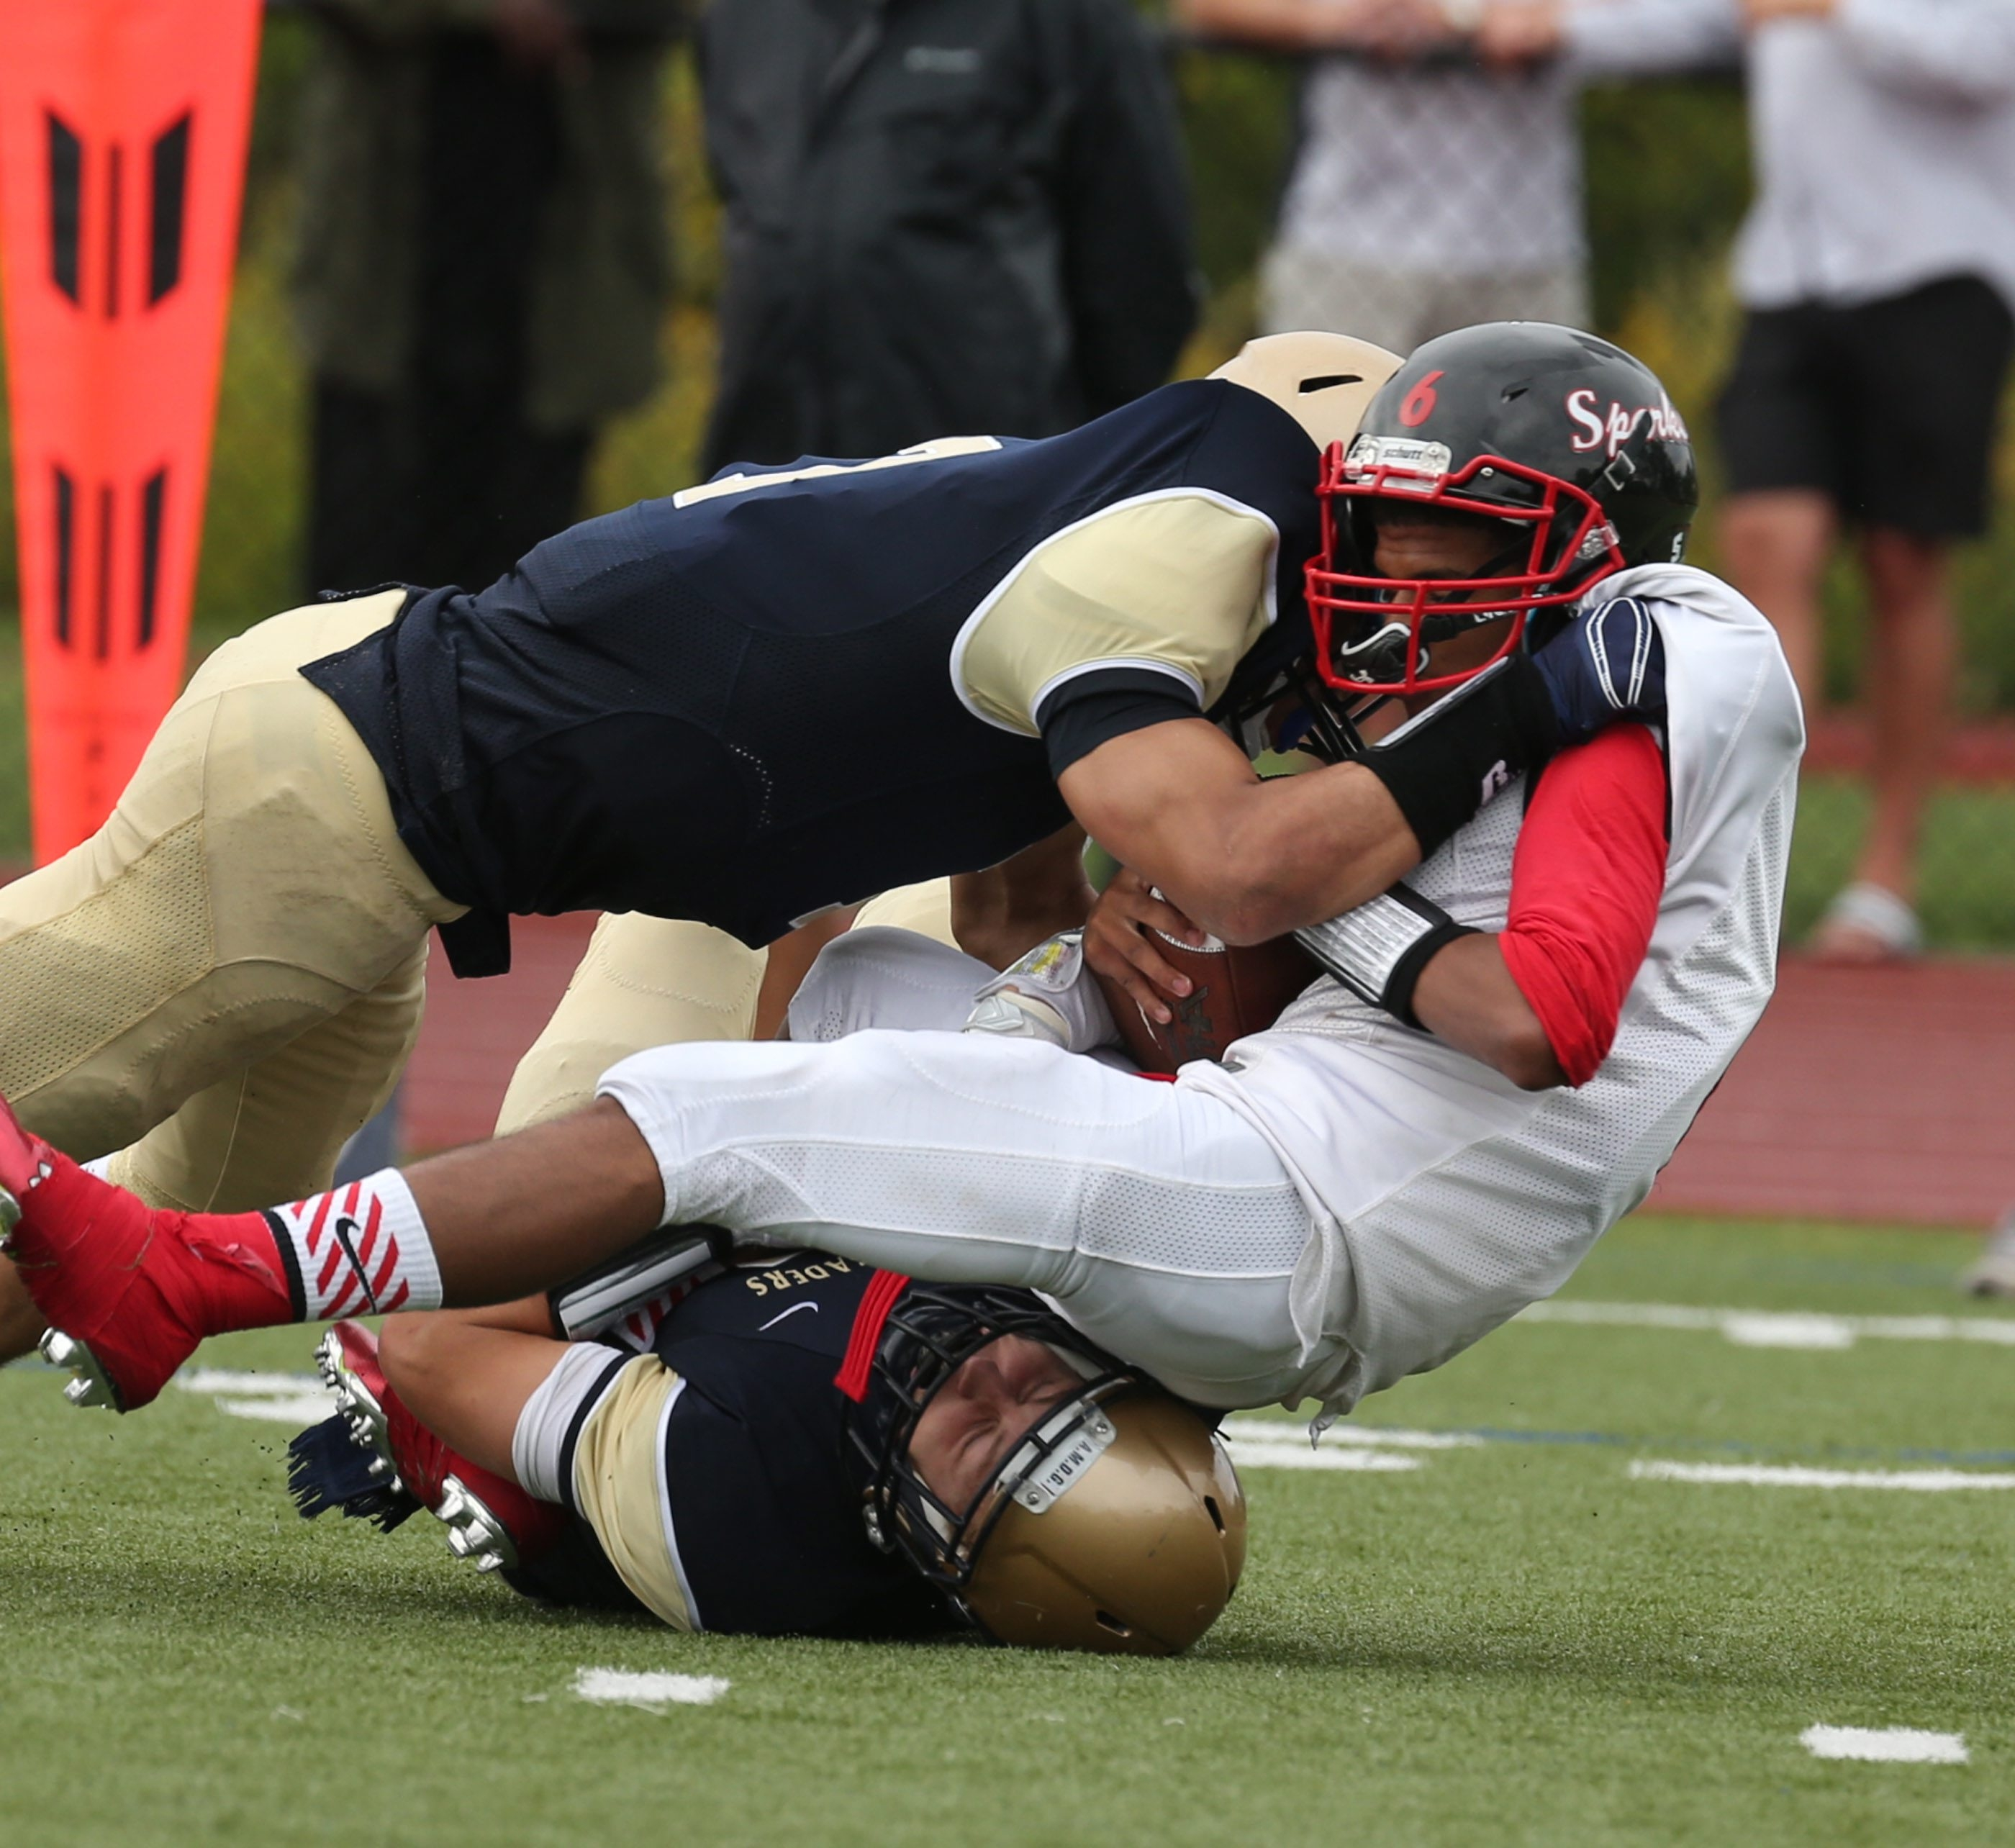 Canisius' Justin Jones and Jake Lutz sack South Park's Tyree Brown for a loss in the third quarter of Saturday's game.